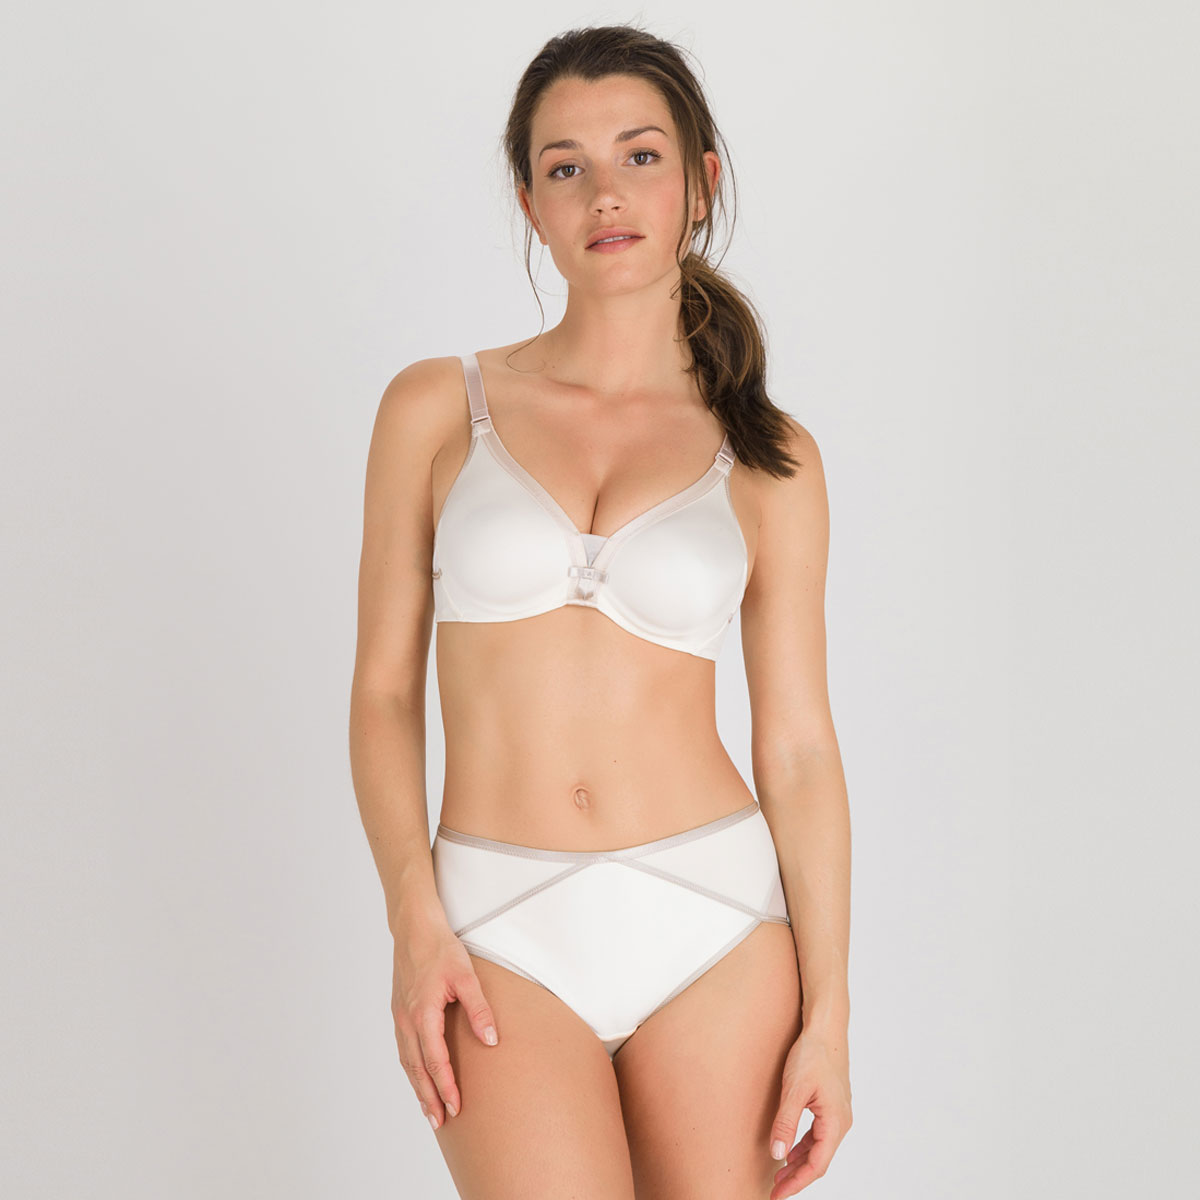 Full Cup Bra in Antique White – Ideal Beauty-PLAYTEX